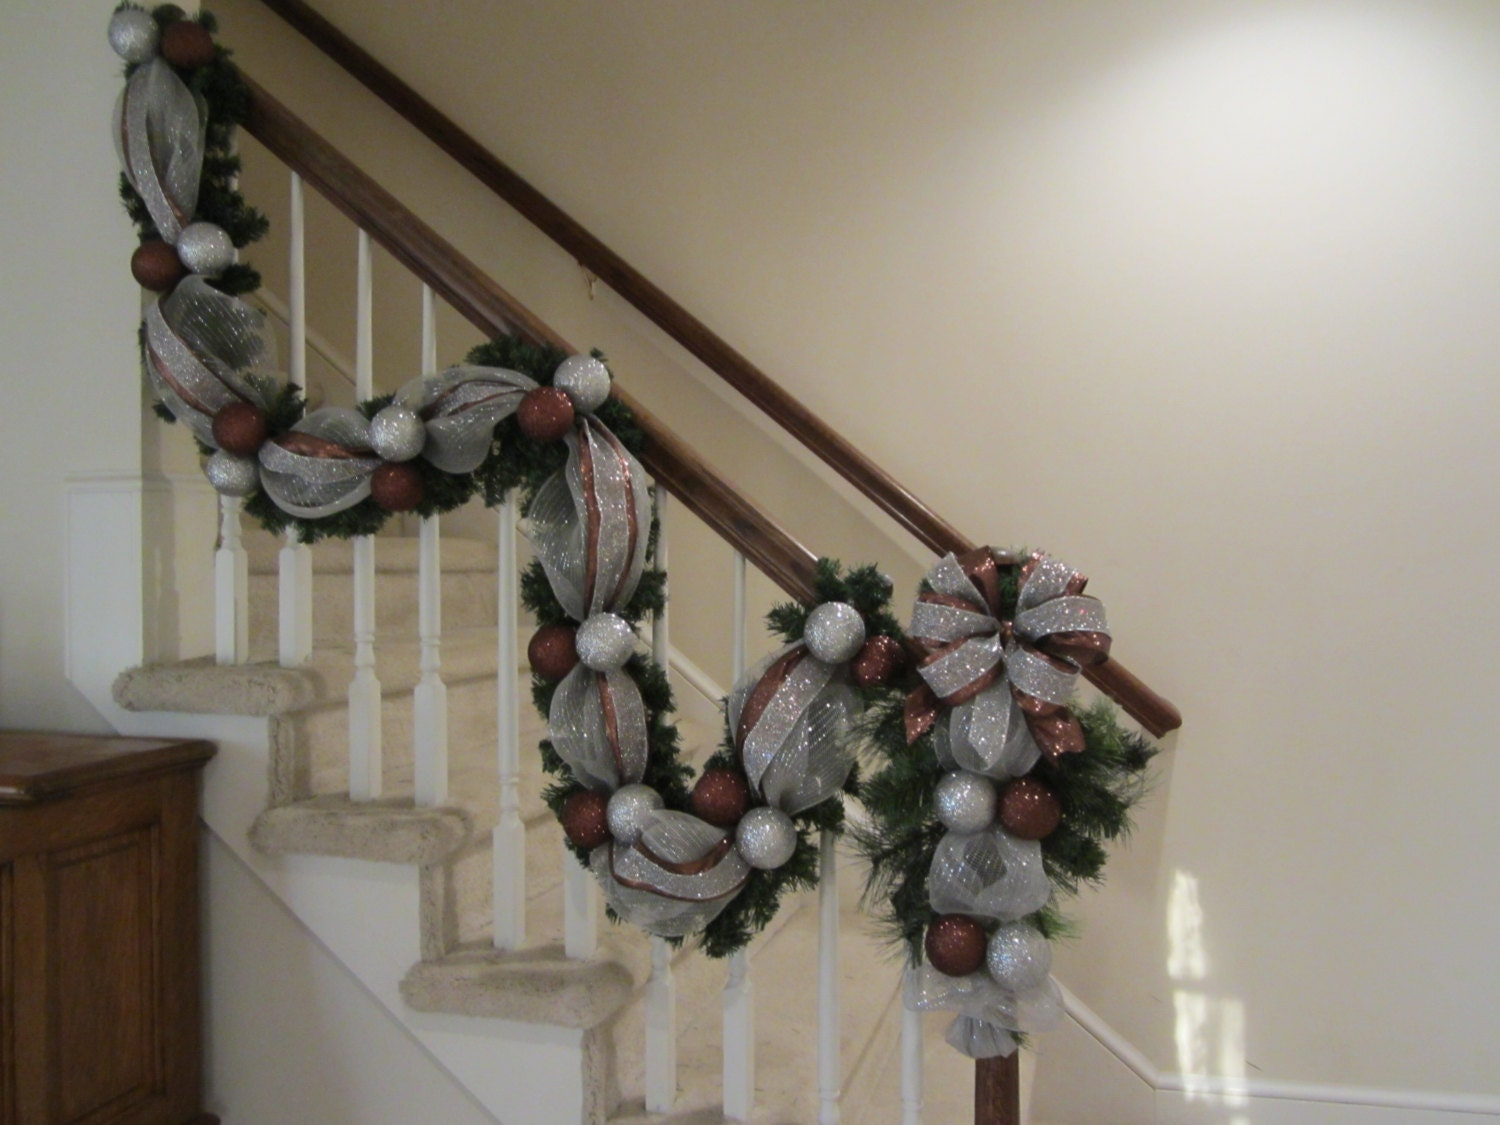 Christmas Garland & Wreath Swag,Tear Drop, Deco Mesh, Staircase Post Rail, Wall, Mantel, Door Pine Wreath Swag, Silver, Bronze Holiday Decor